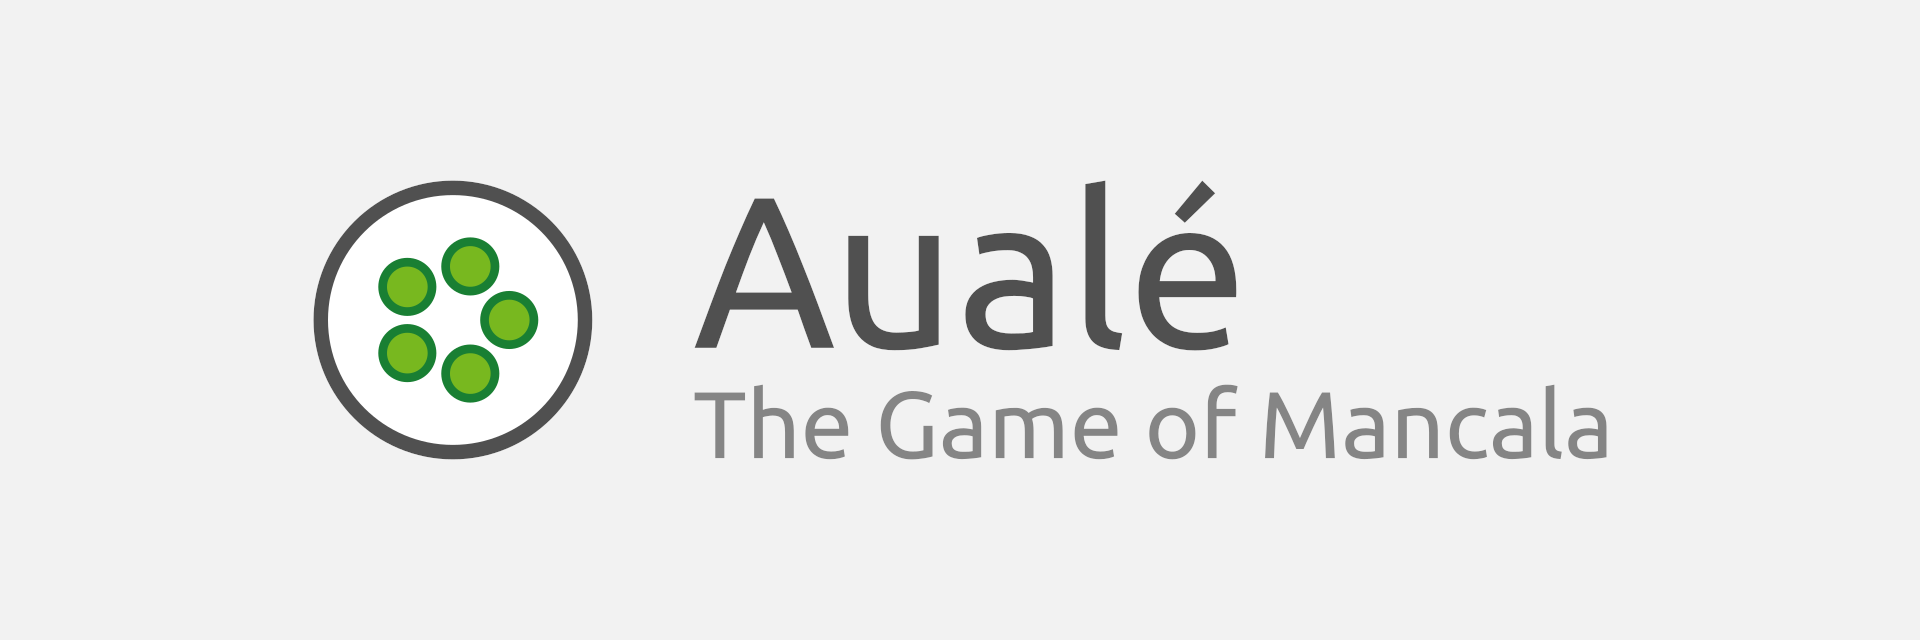 Aualé — The Game of Mancala banner